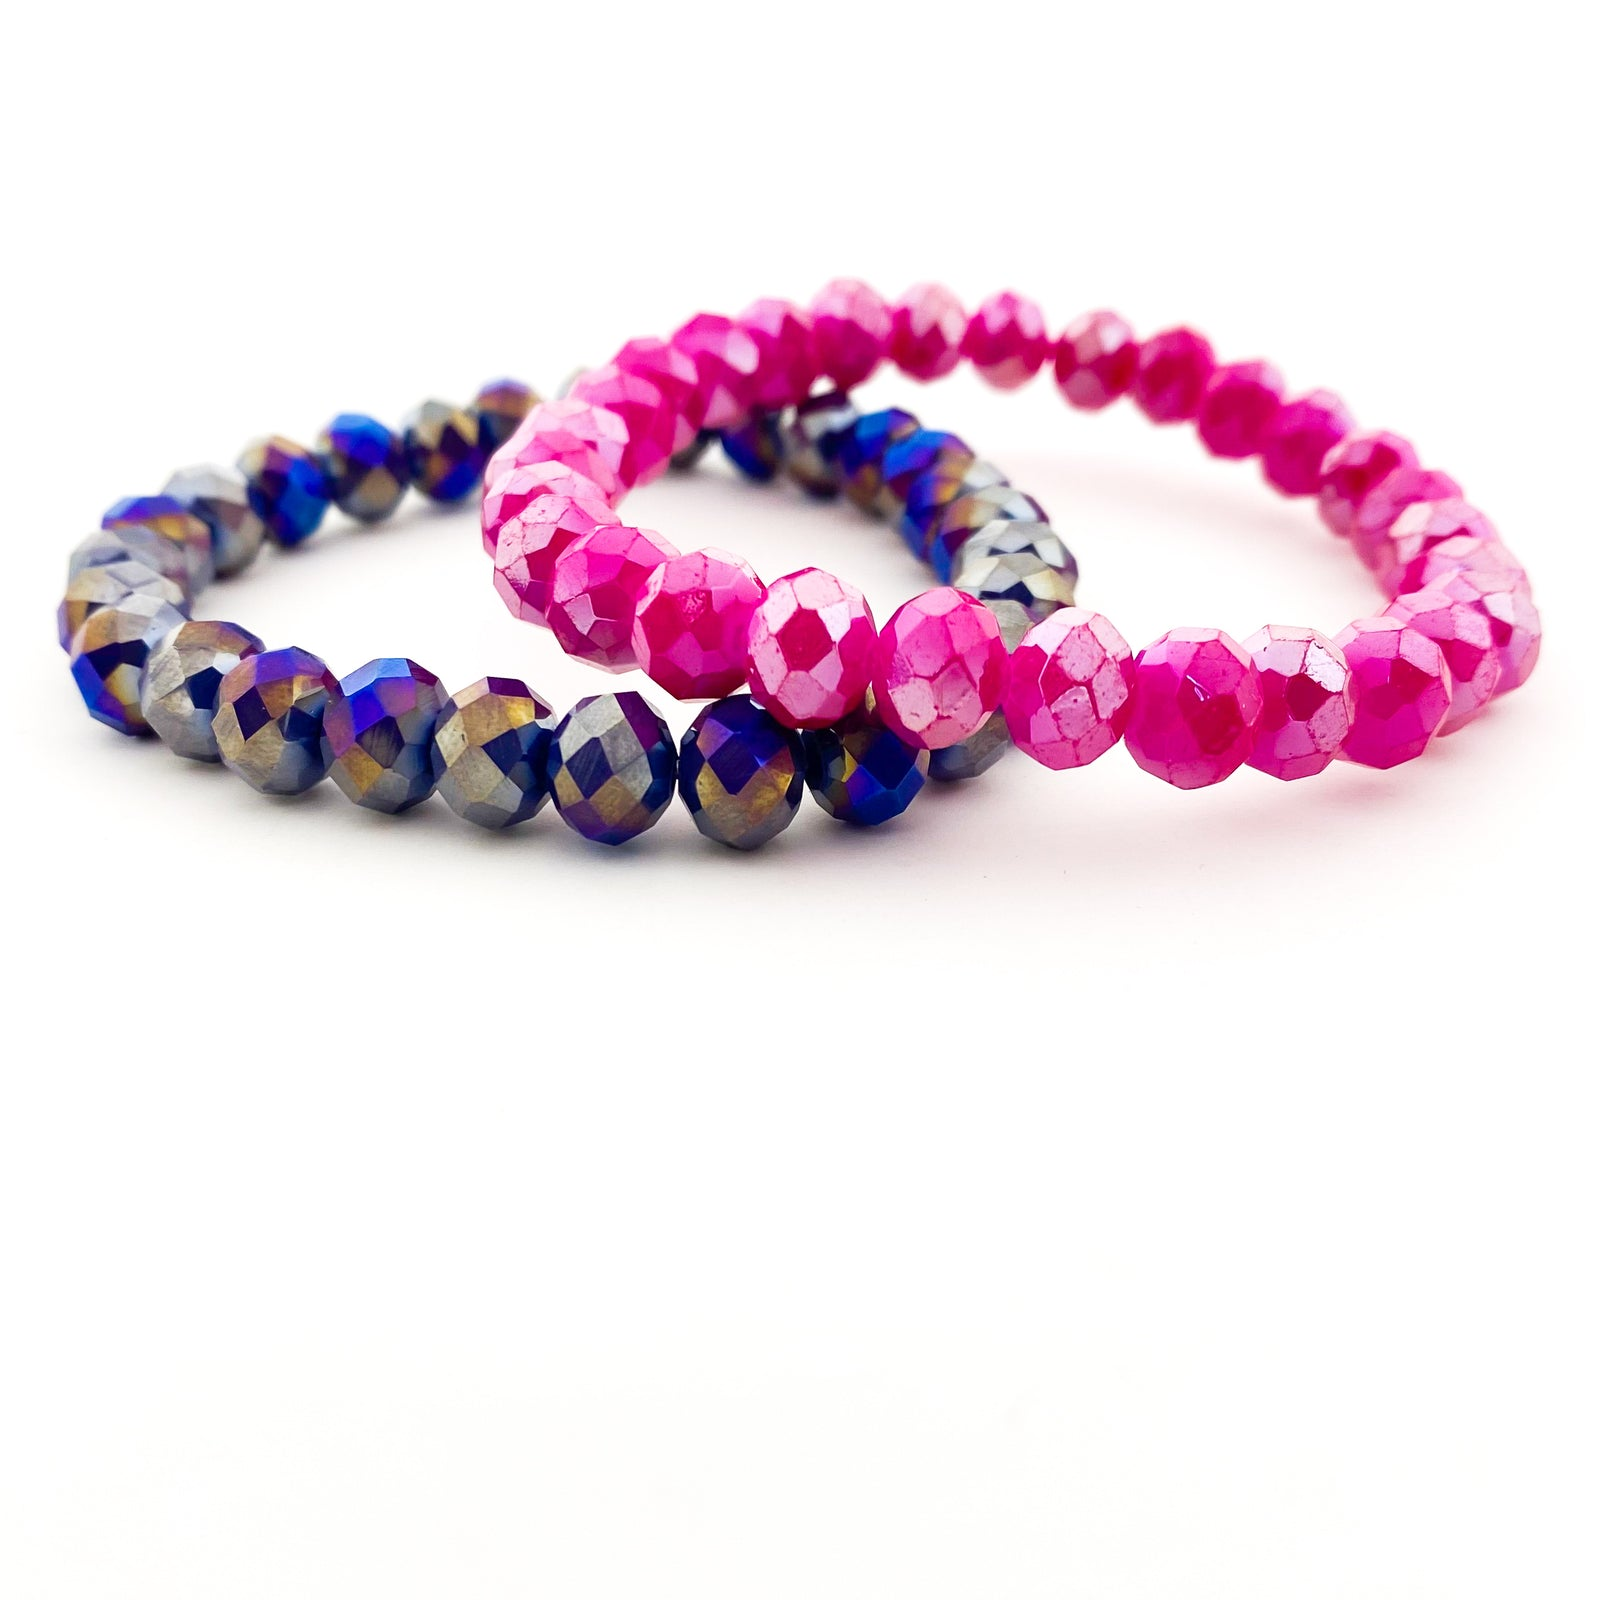 BRIGHT SPARKLE CRYSTAL BRACELETS | 8MM | STYLE OPTIONS